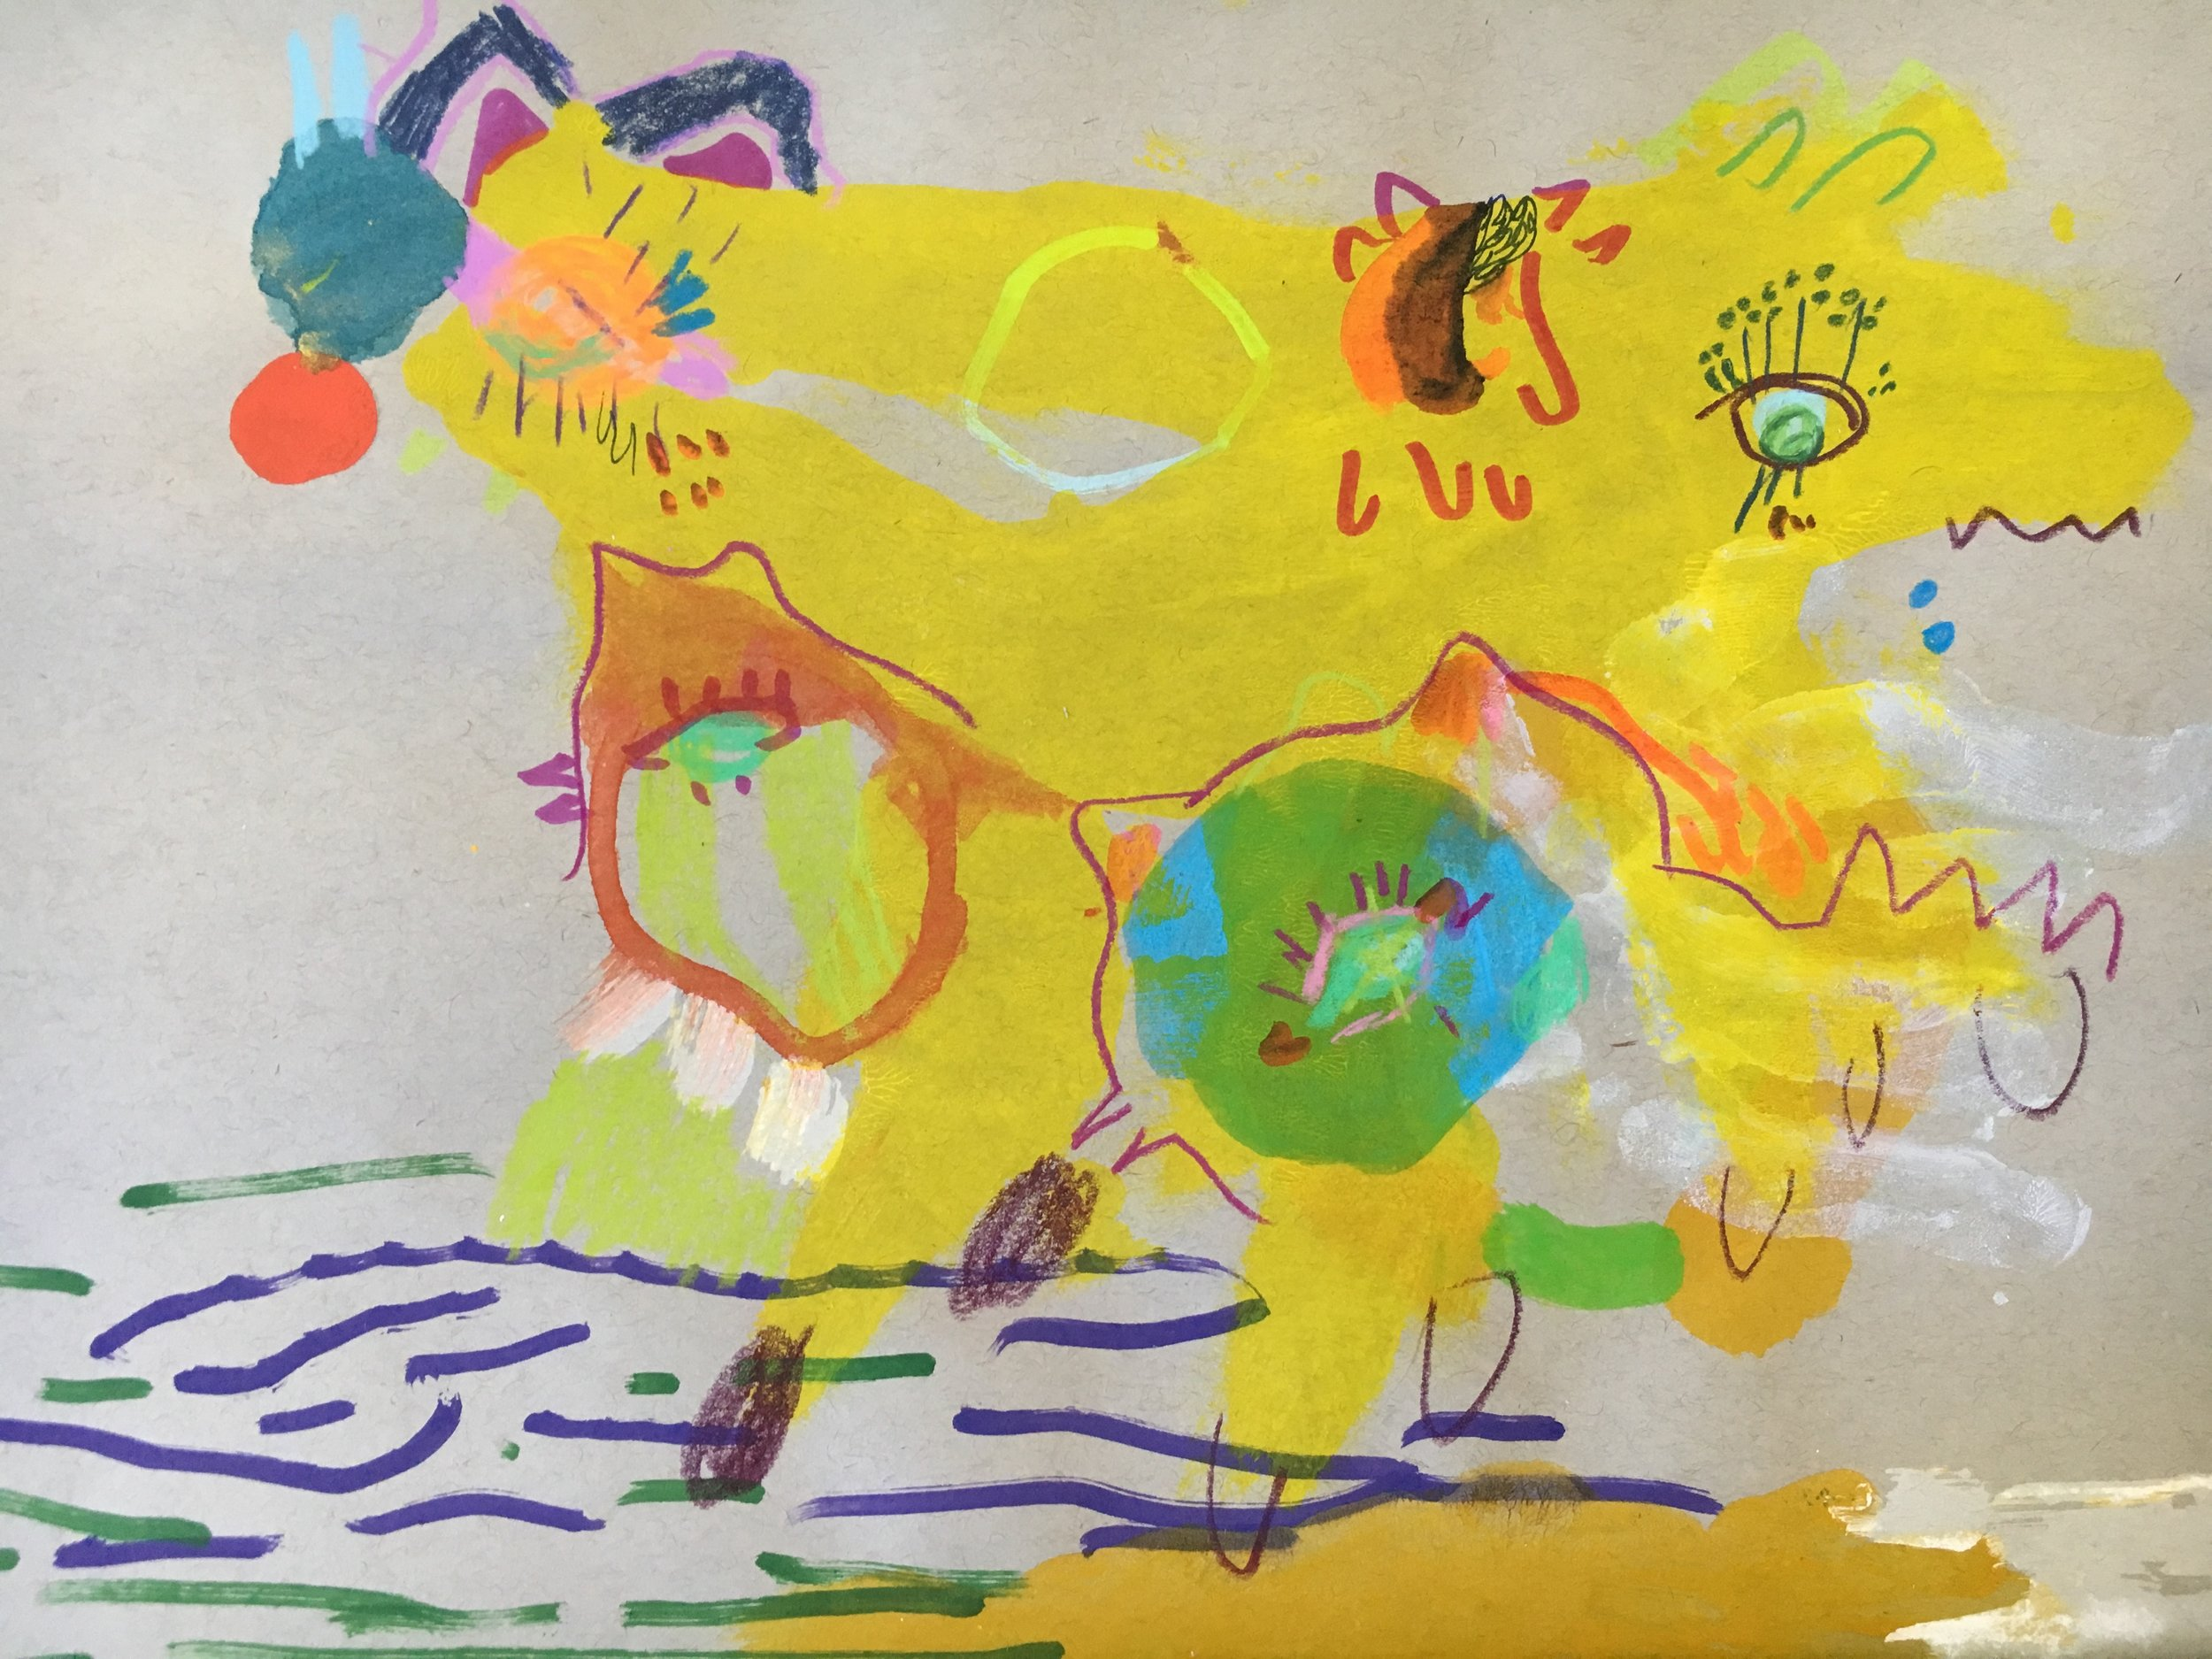 TWO HEADED DOG WITH BIRD BABIES   Watercolor, acrylic, crayon, ink and dye on grey paper 12 x 9 inches